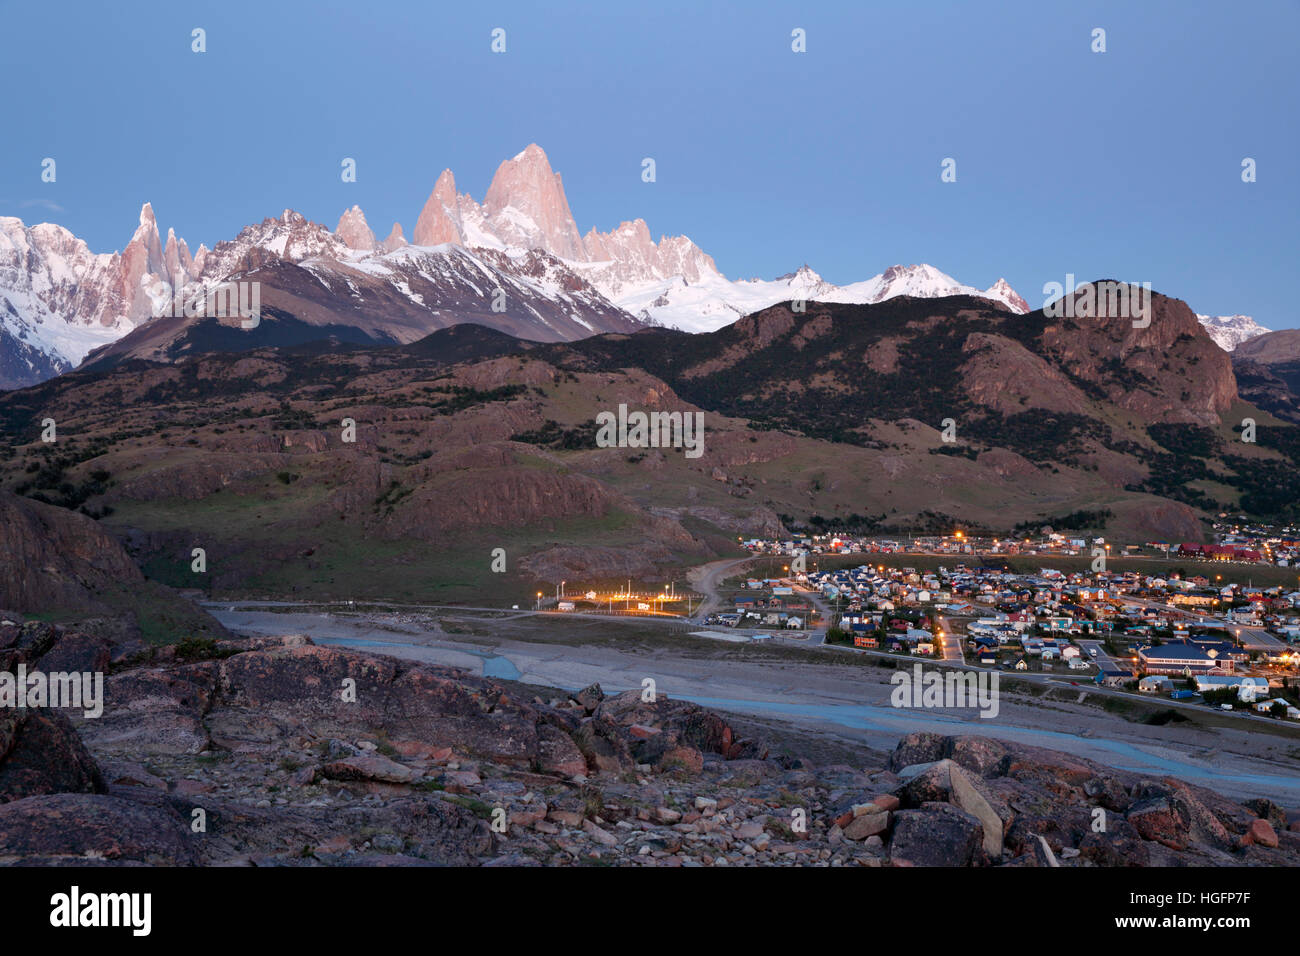 View over Mount Fitz Roy and Cerro Torre with town of El Chalten, El Chalten, Patagonia, Argentina, South America Stock Photo